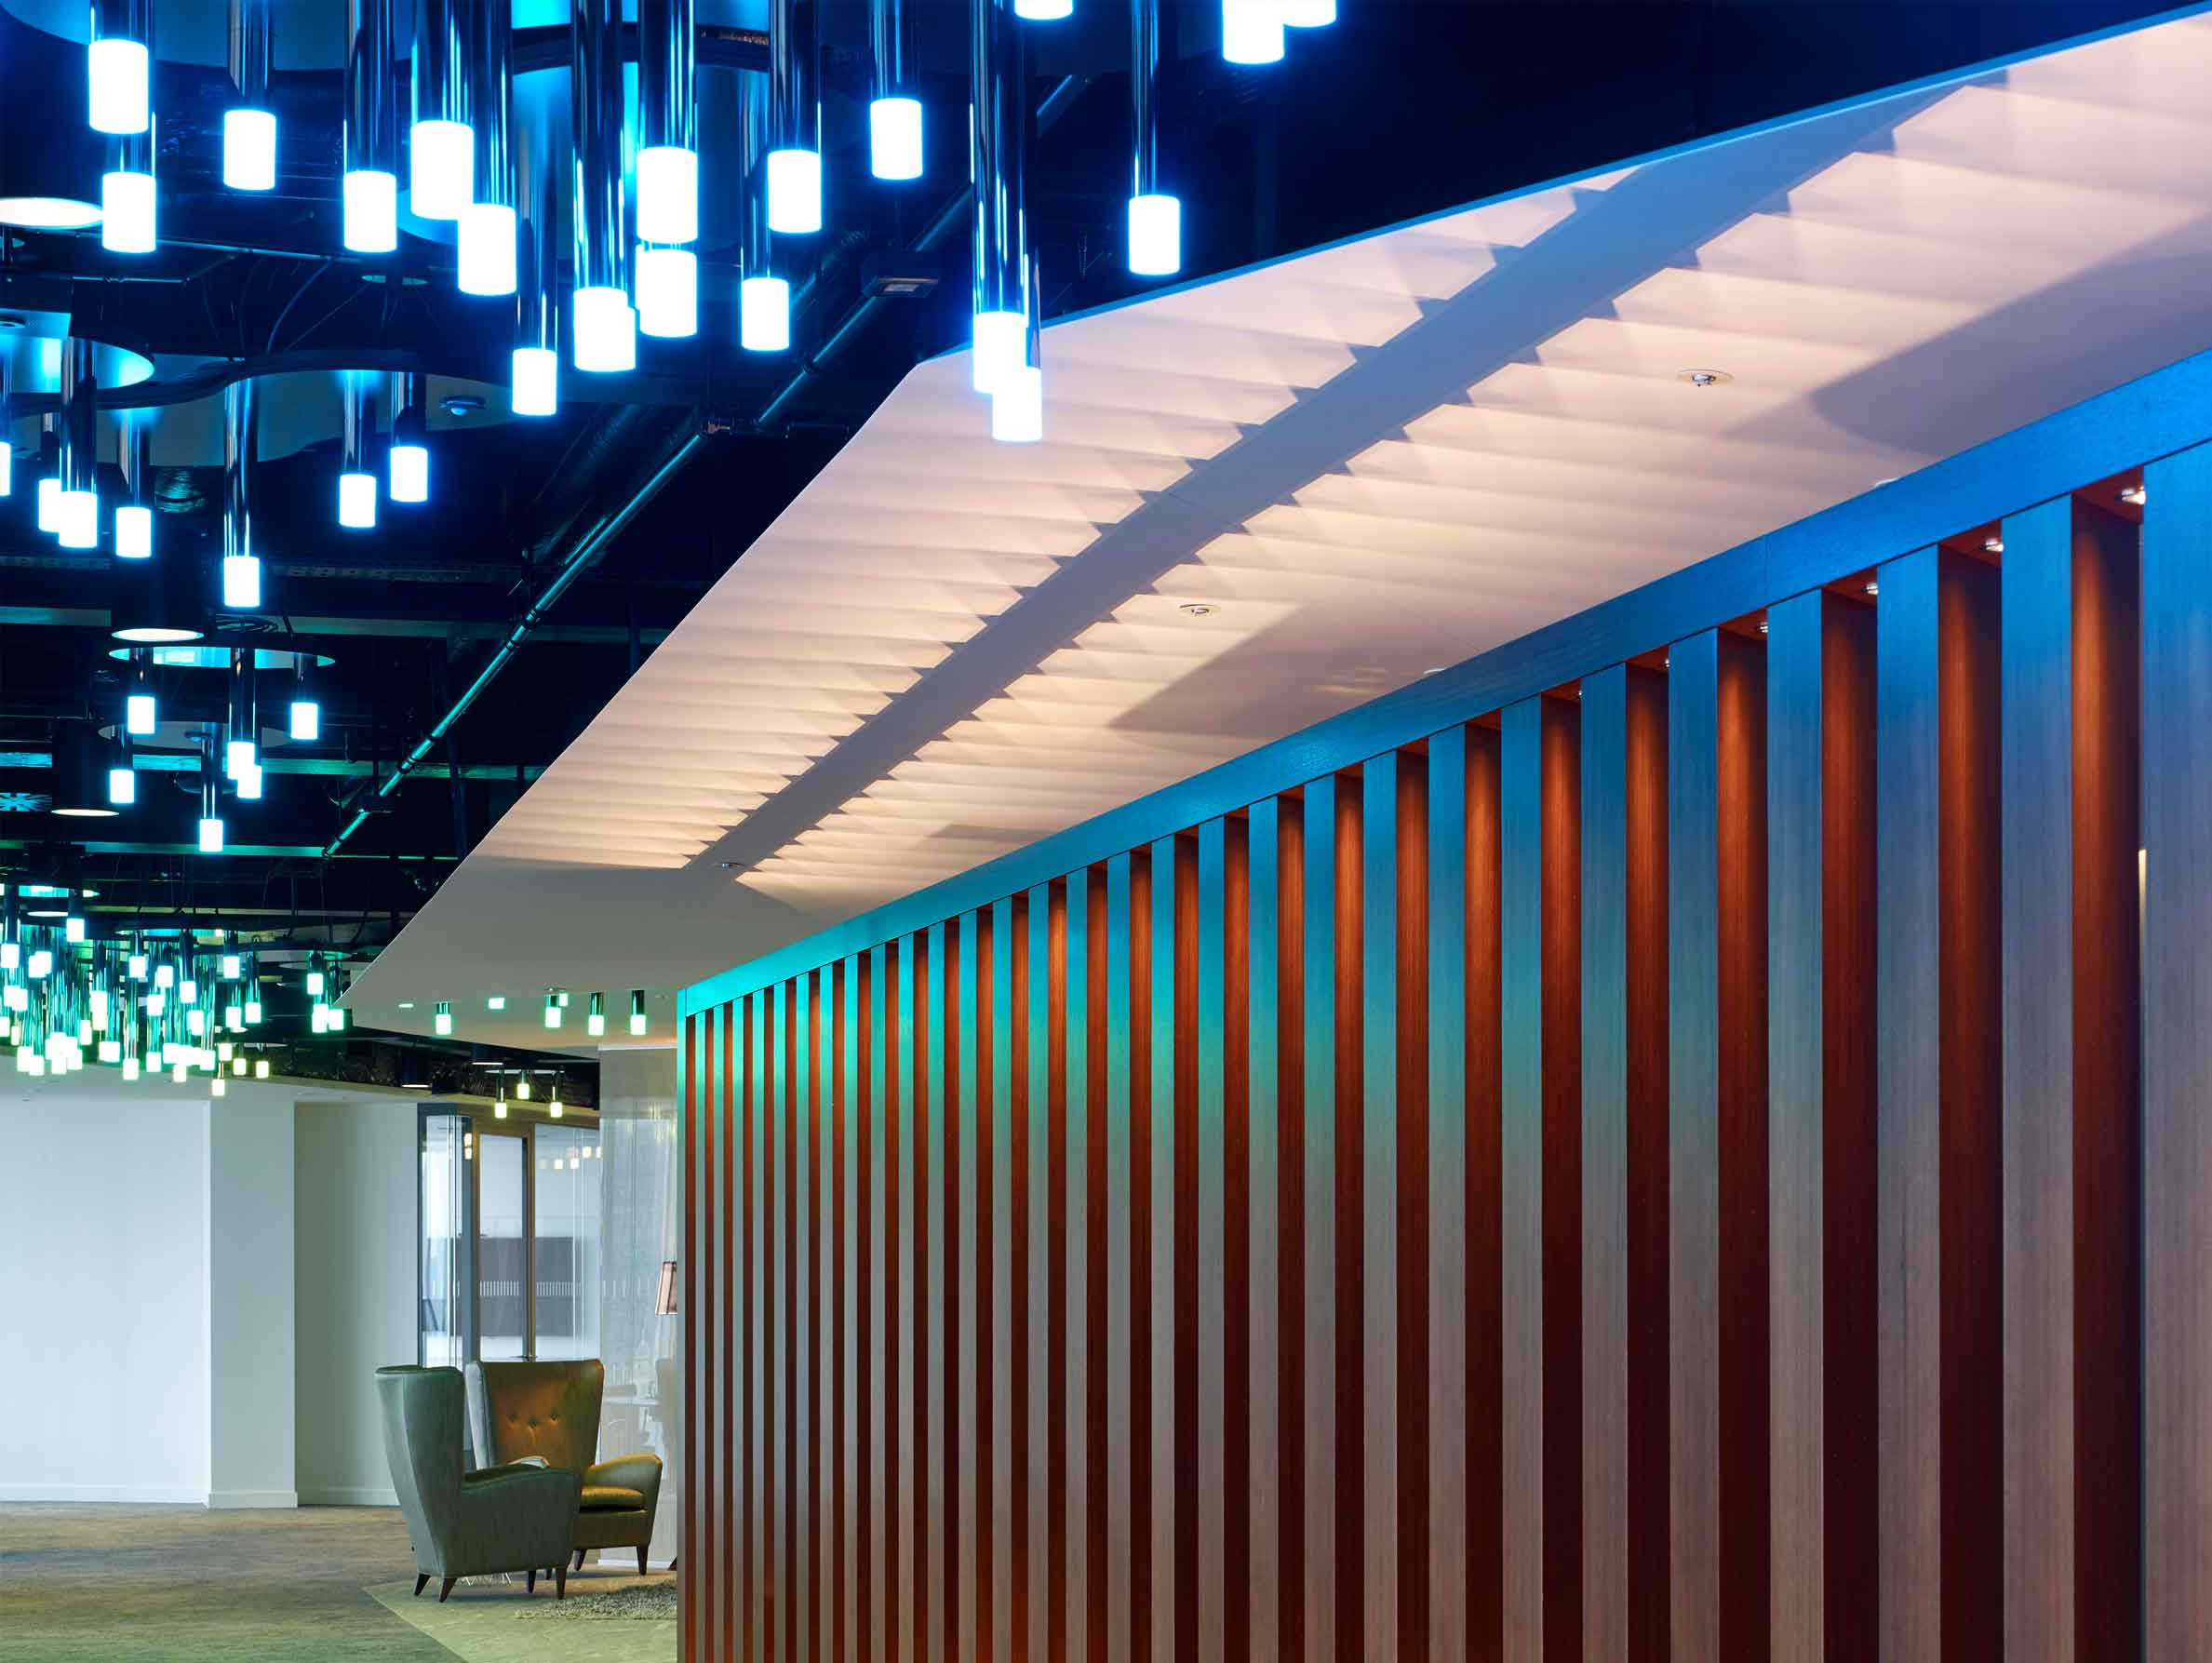 Motion Sensitive Light Sculpture Smoked Chrome Plated Rods Nulty Bespoke